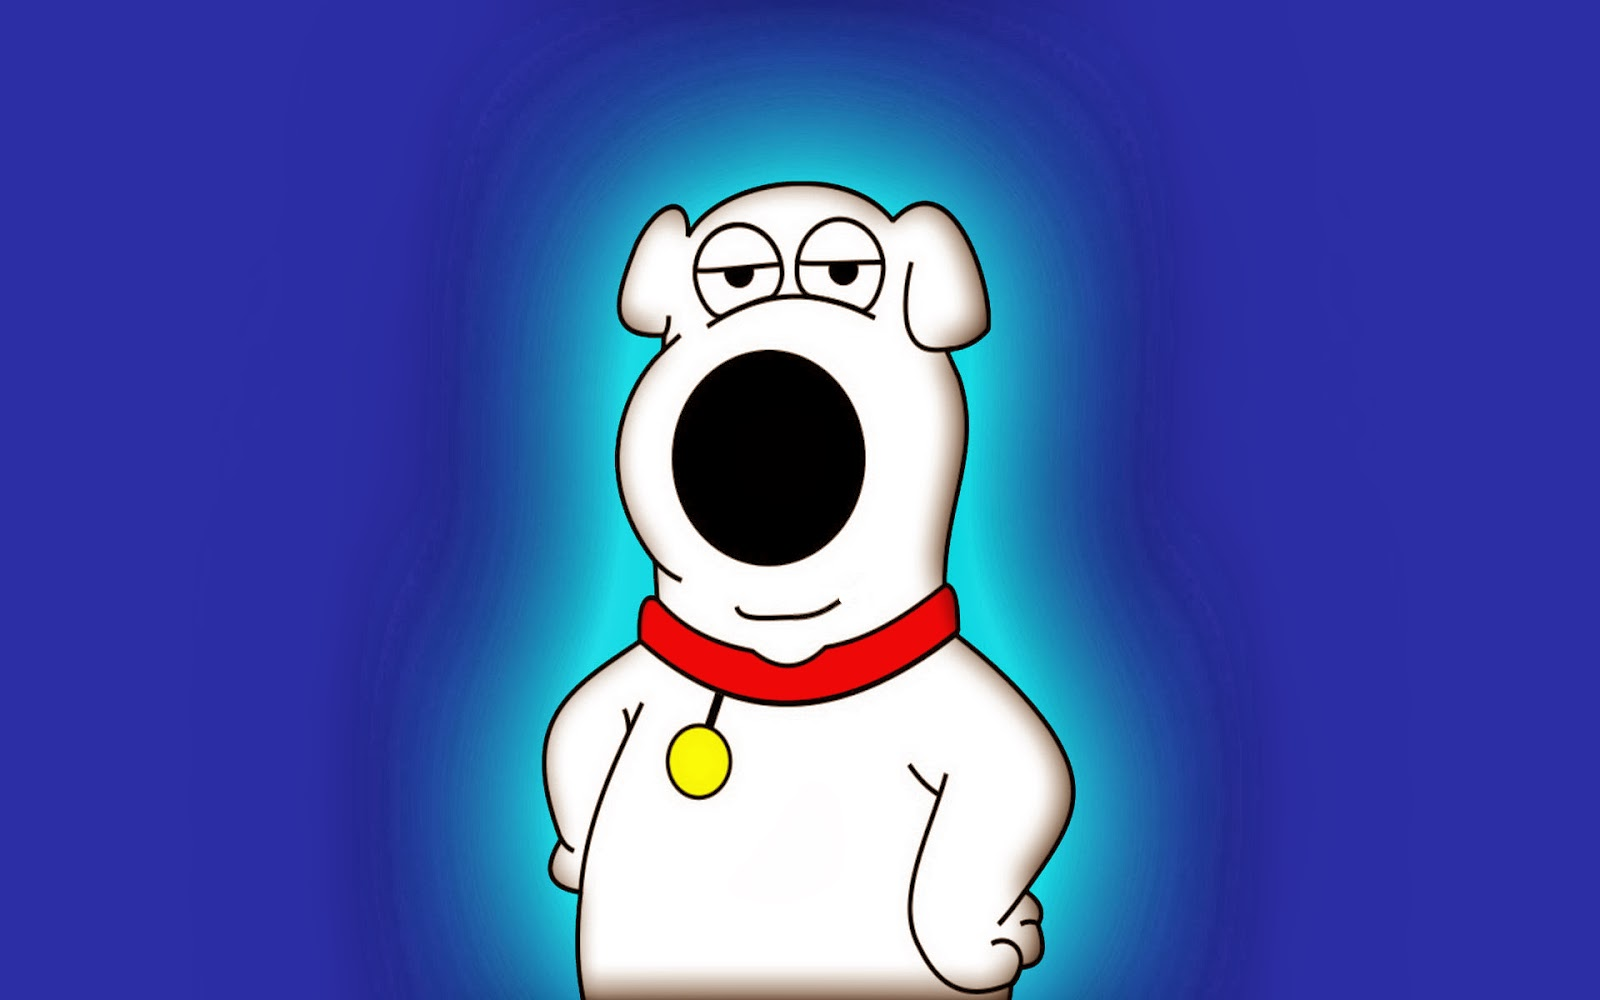 family guy characters wallpaper - photo #25